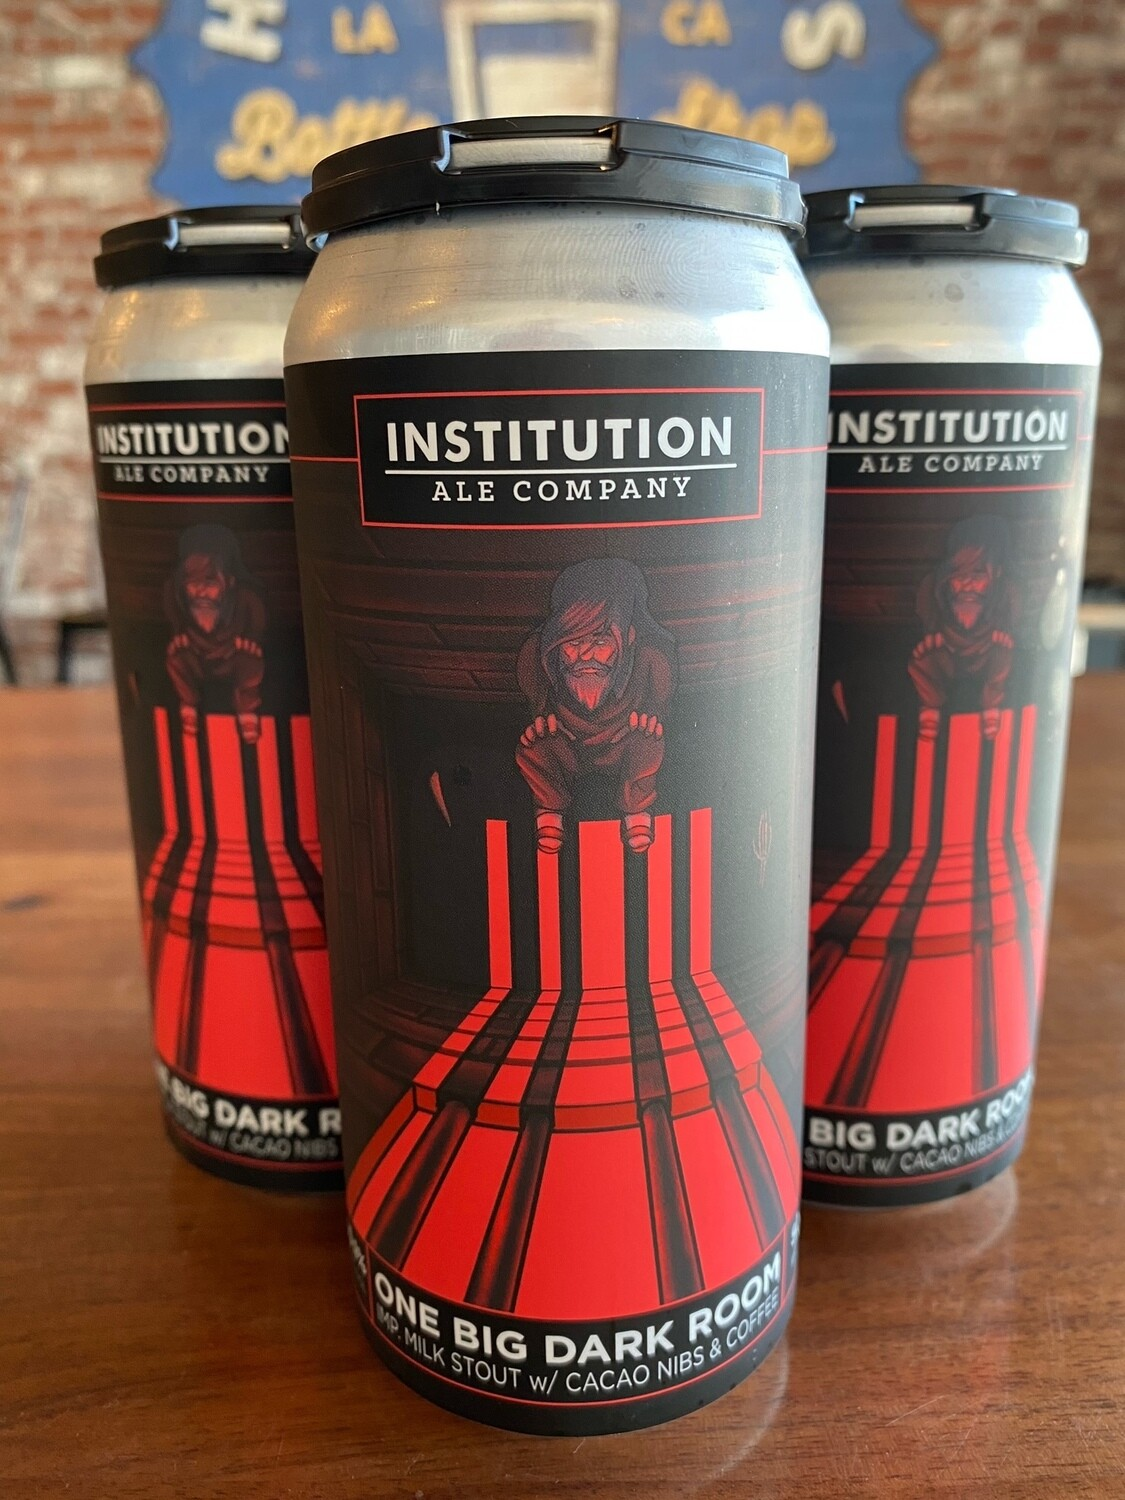 Institution Ales One Big Dark Room